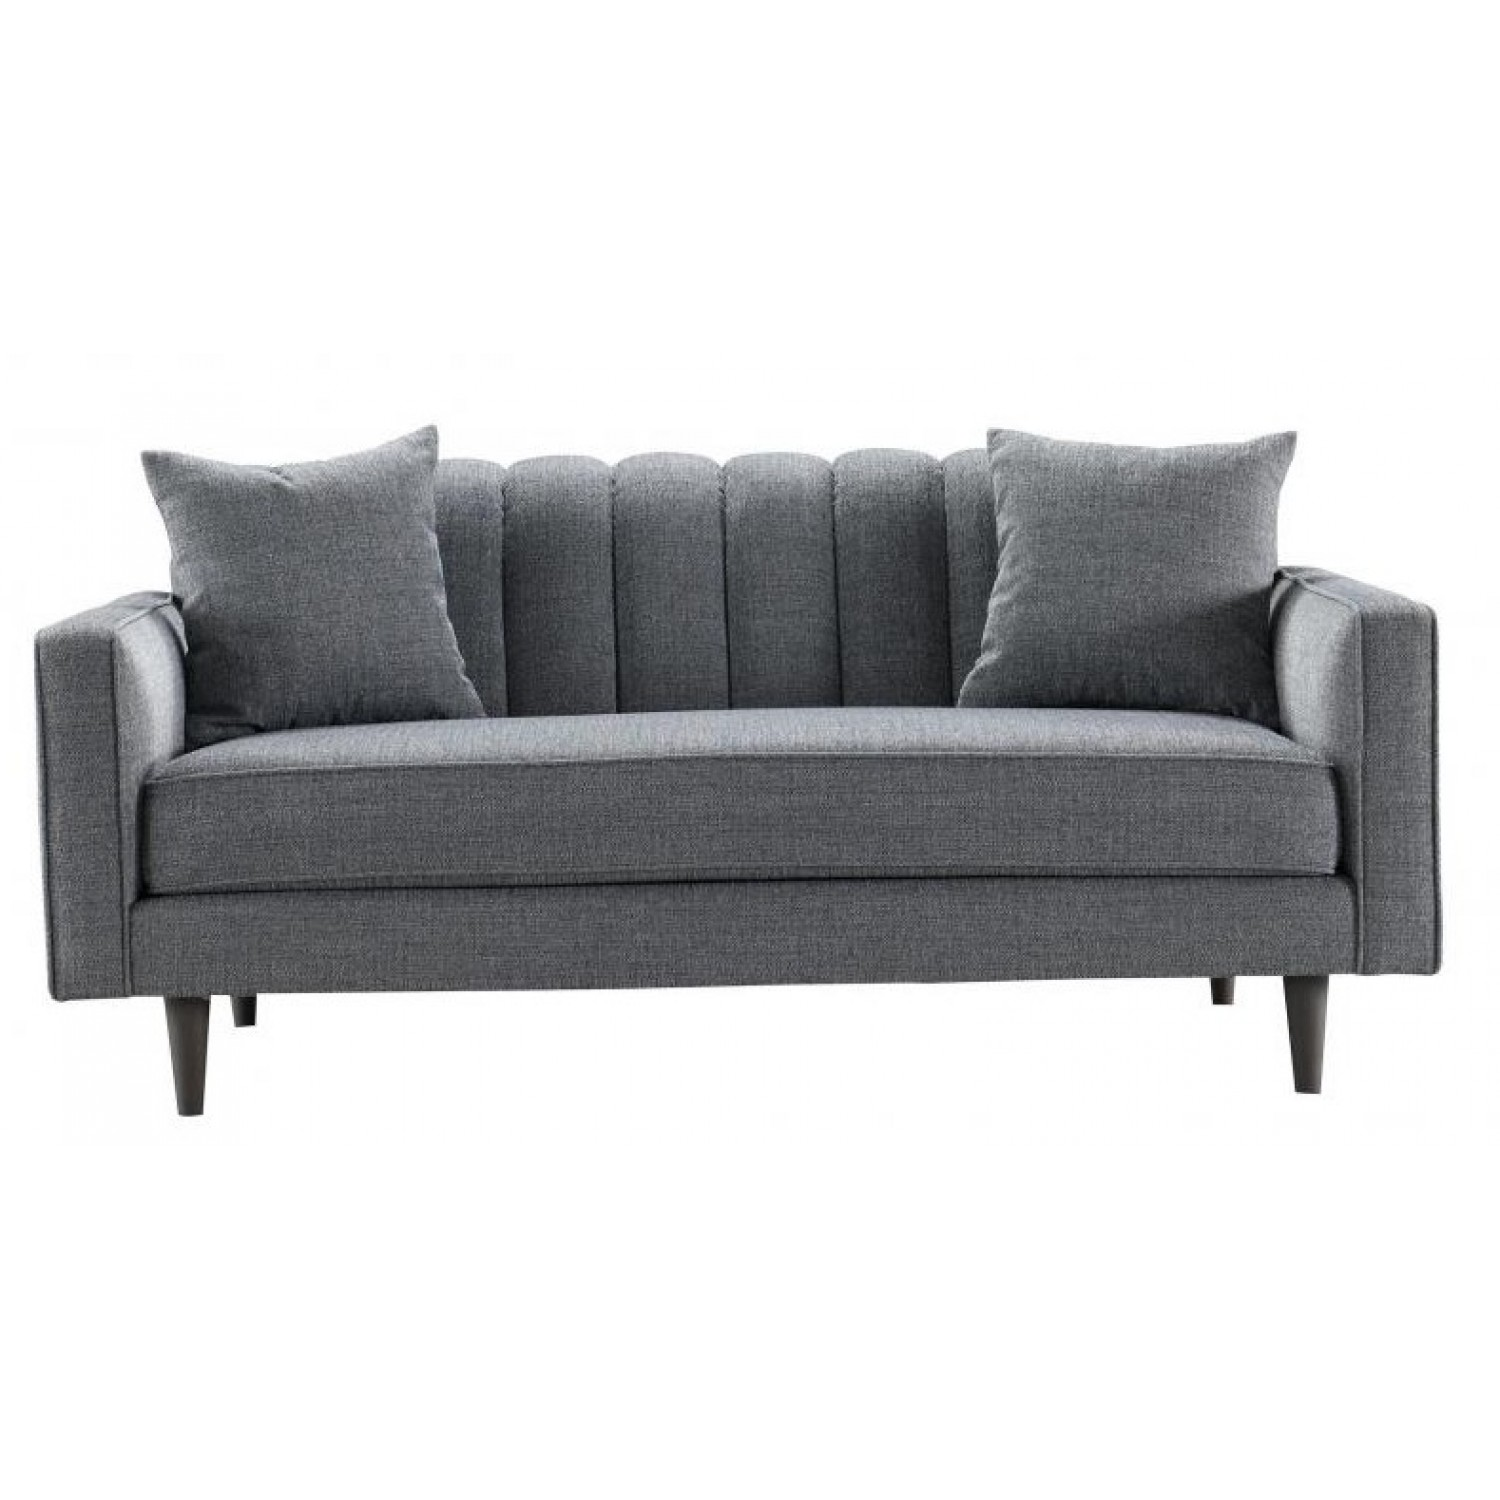 Besp Oak Contemporary Sofas Grey Ribbed 2 Seater Sofa